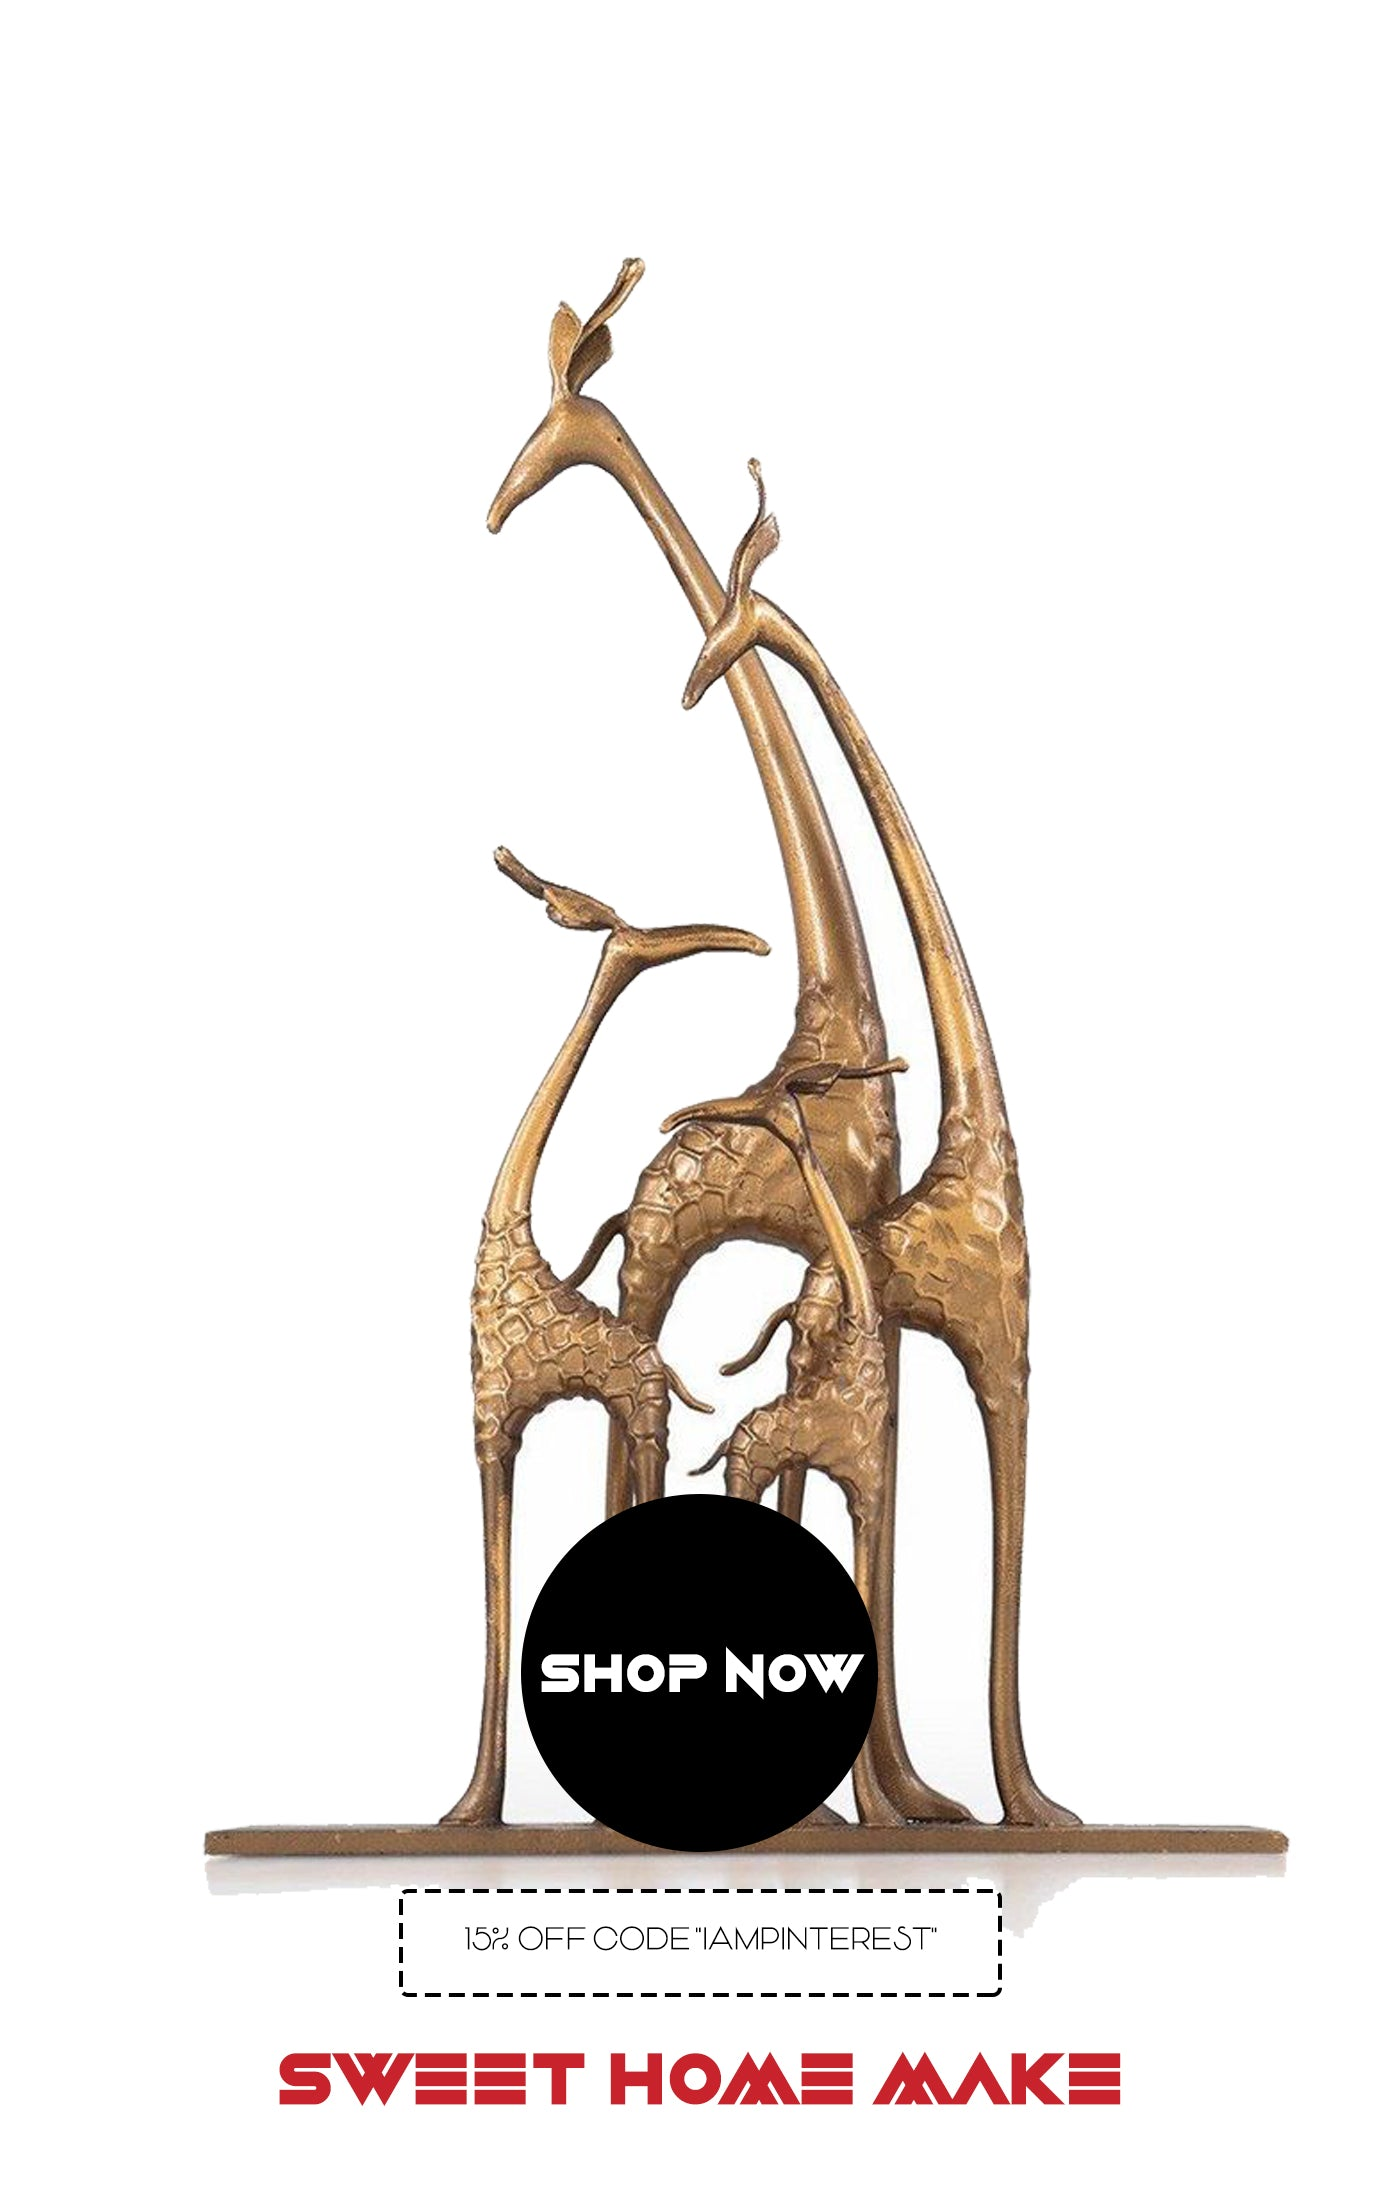 Home Decor Store with Giraffe Statue Ornaments